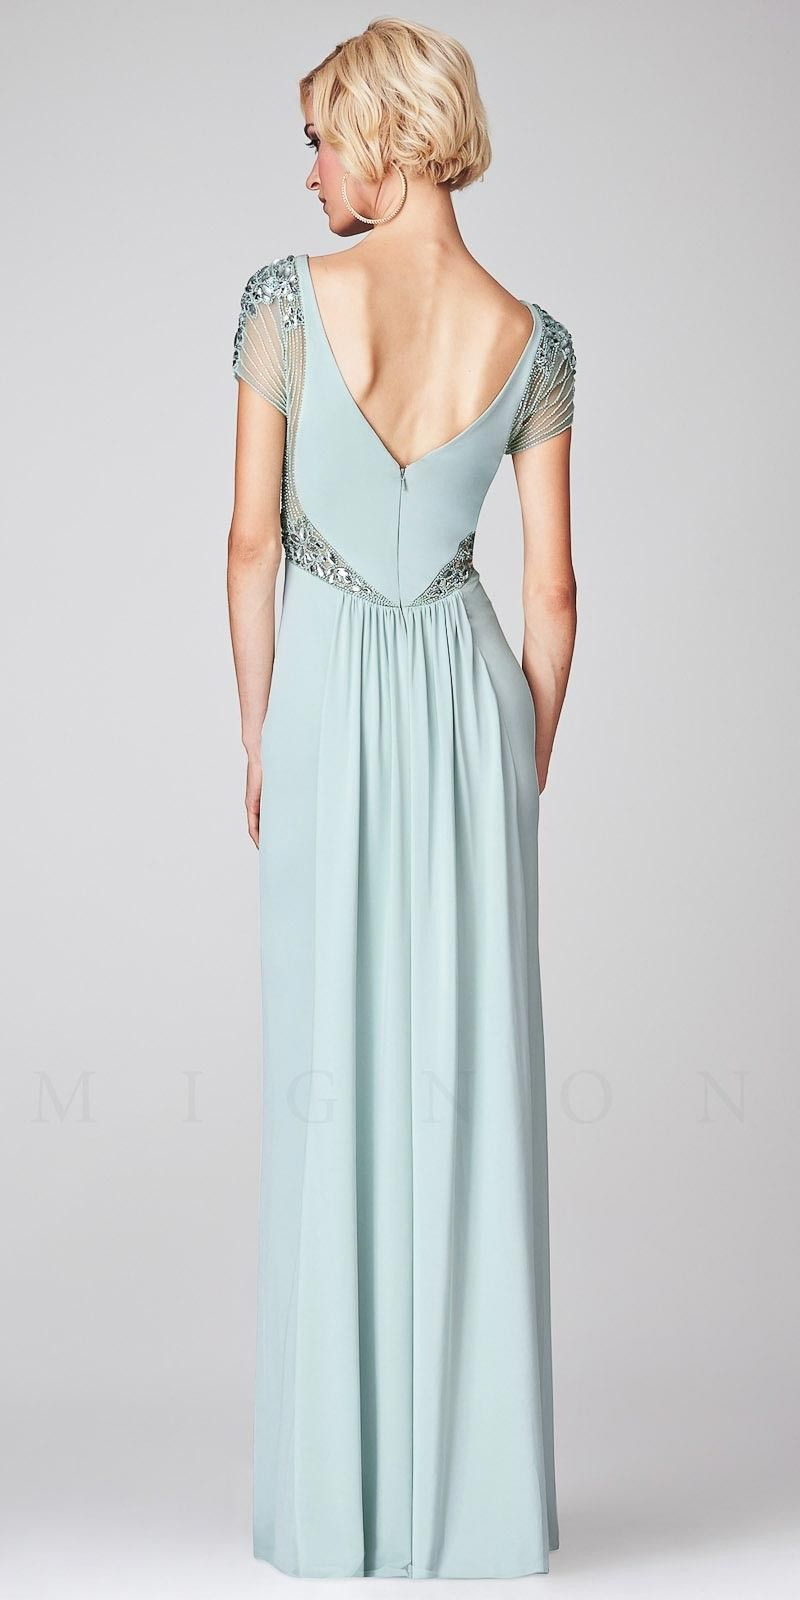 Illusion Embellished Cap Sleeve Long Evening Dresses by Mignon ...